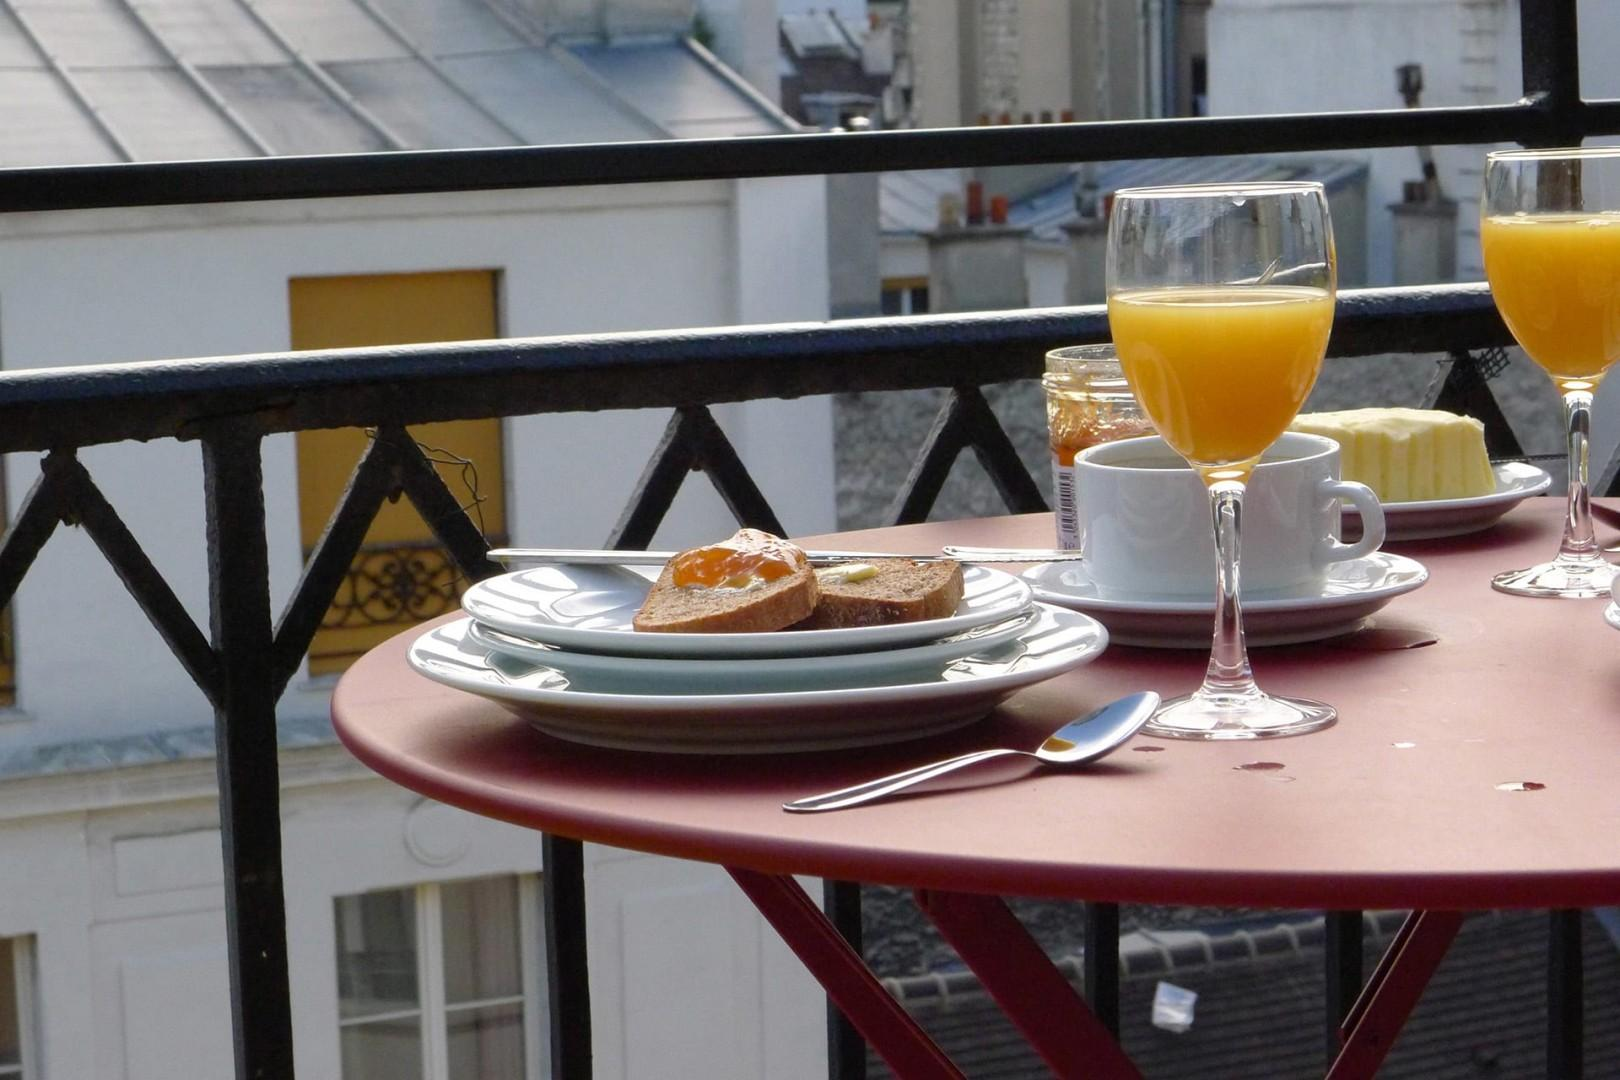 The balcony is the perfect spot for breakfast!